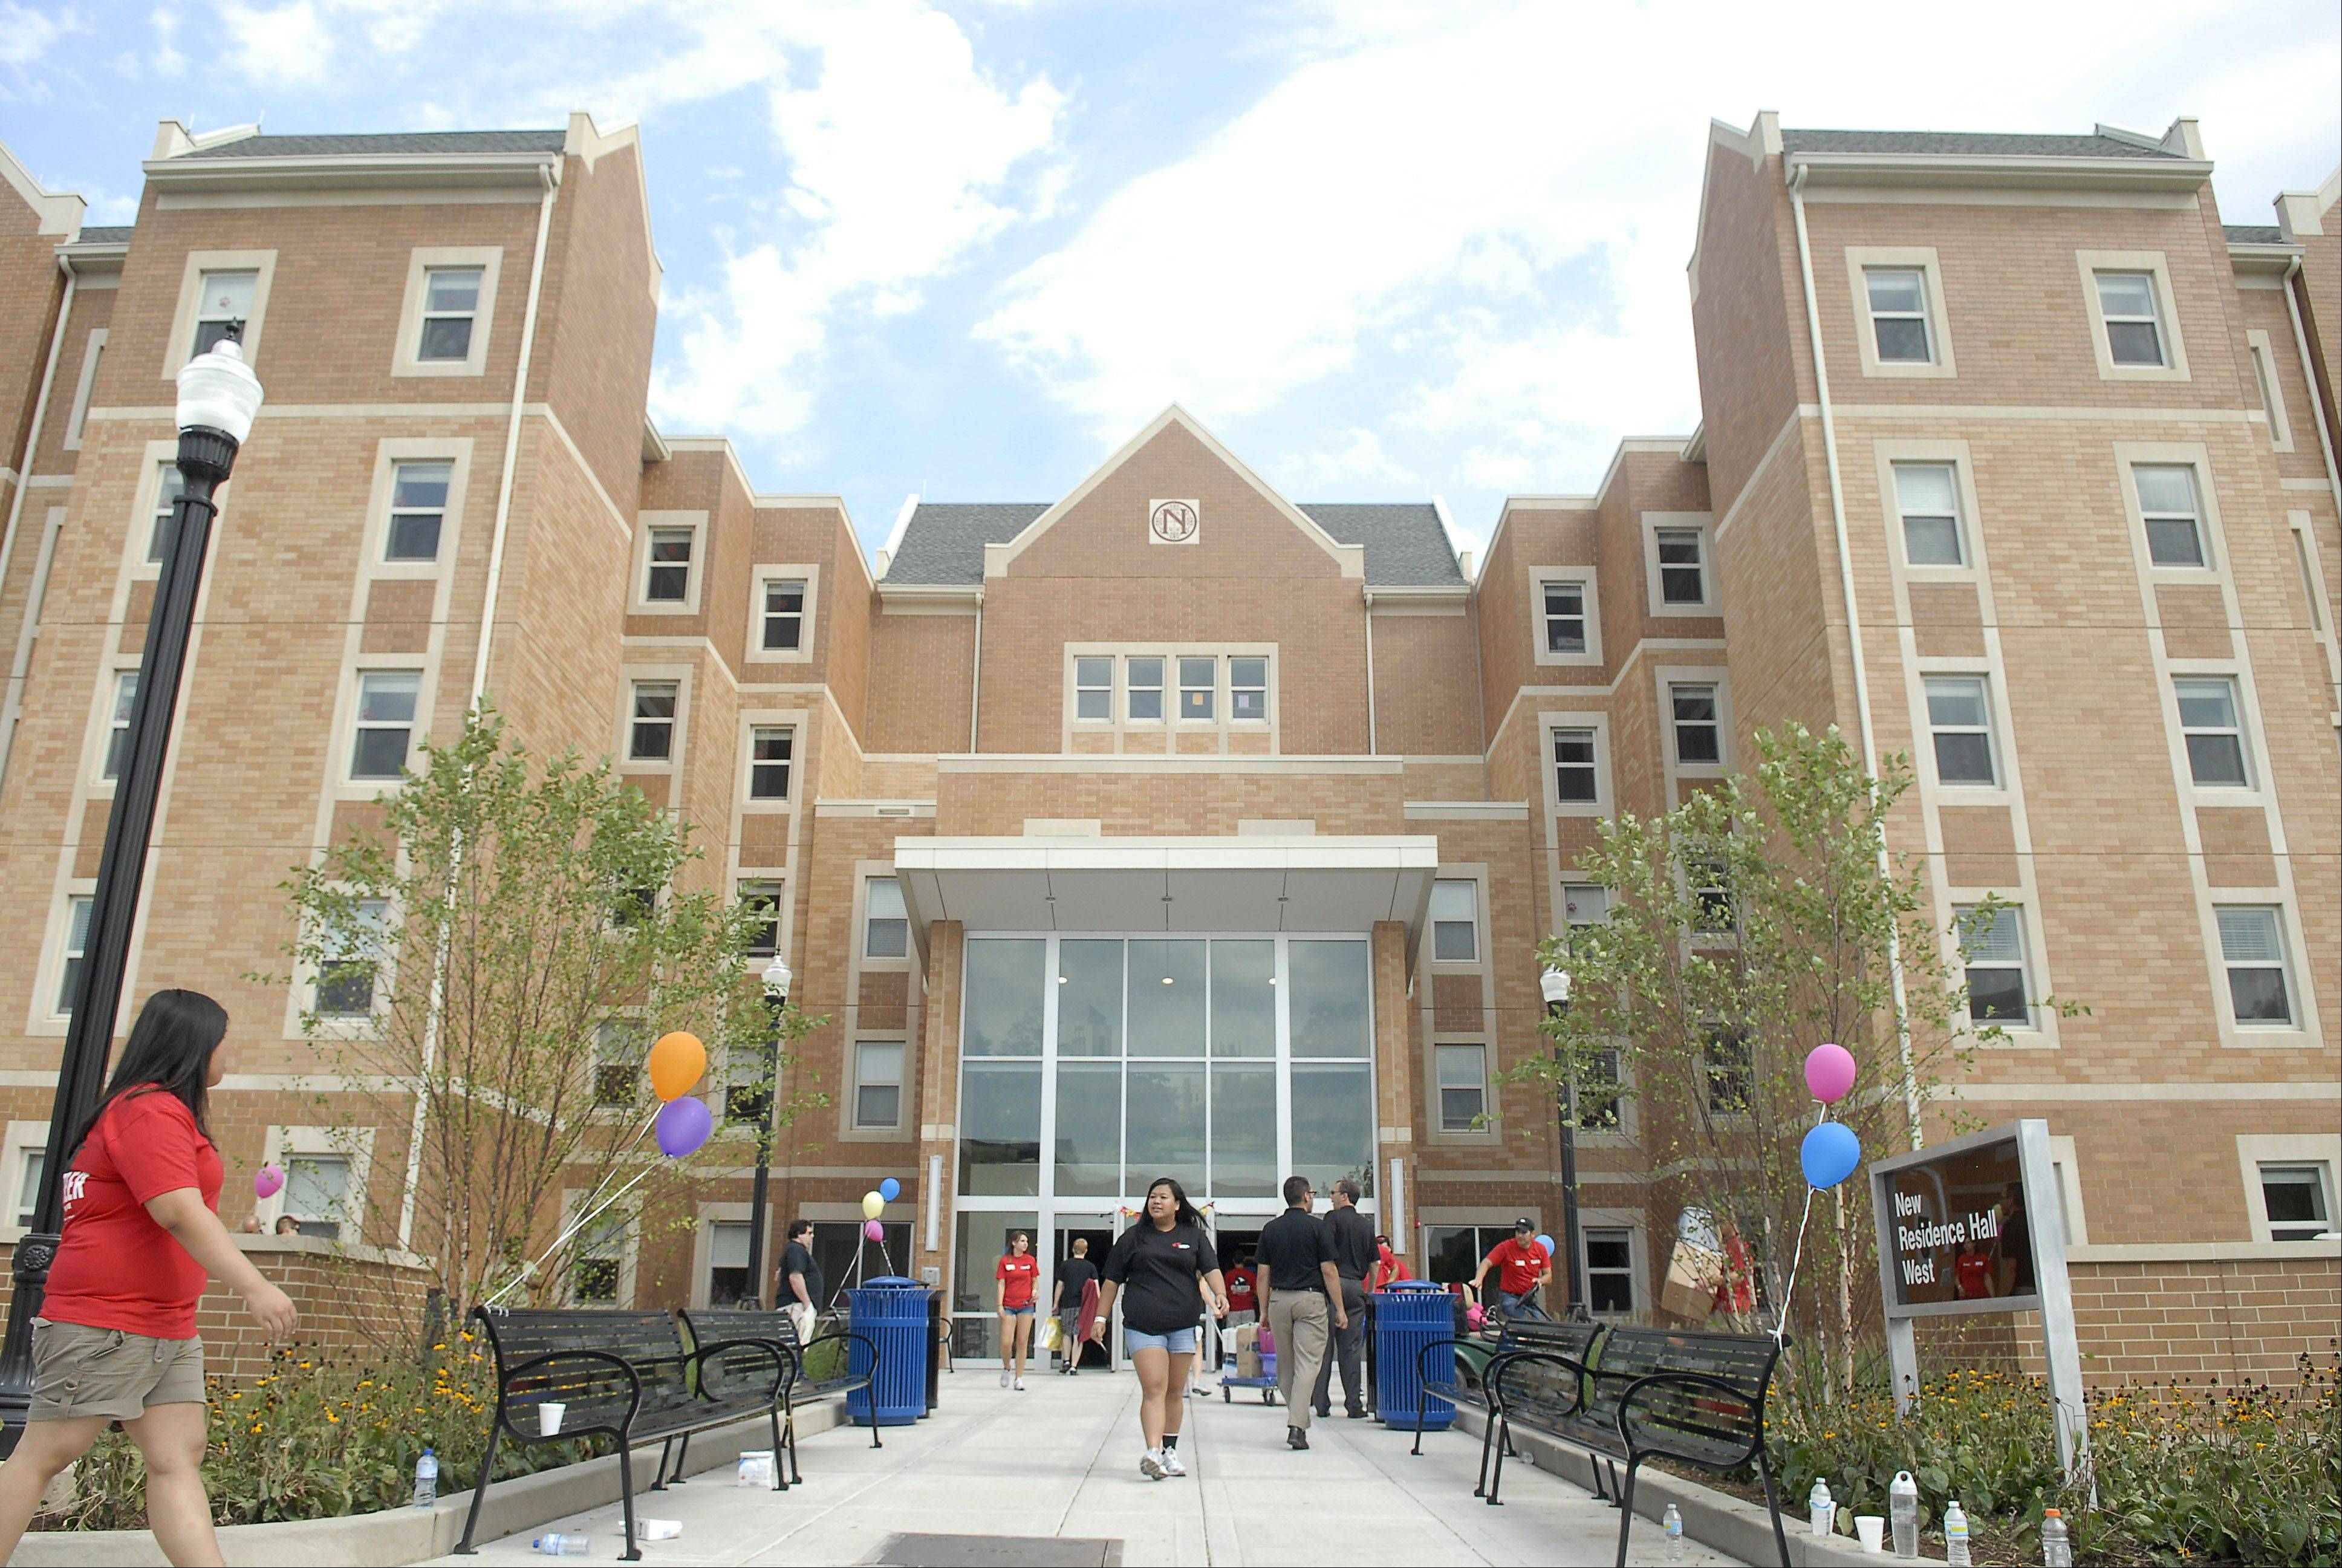 It was move-in day Thursday at New Residence Hall West, as well as across campus, at Northern Illinois University in DeKalb.